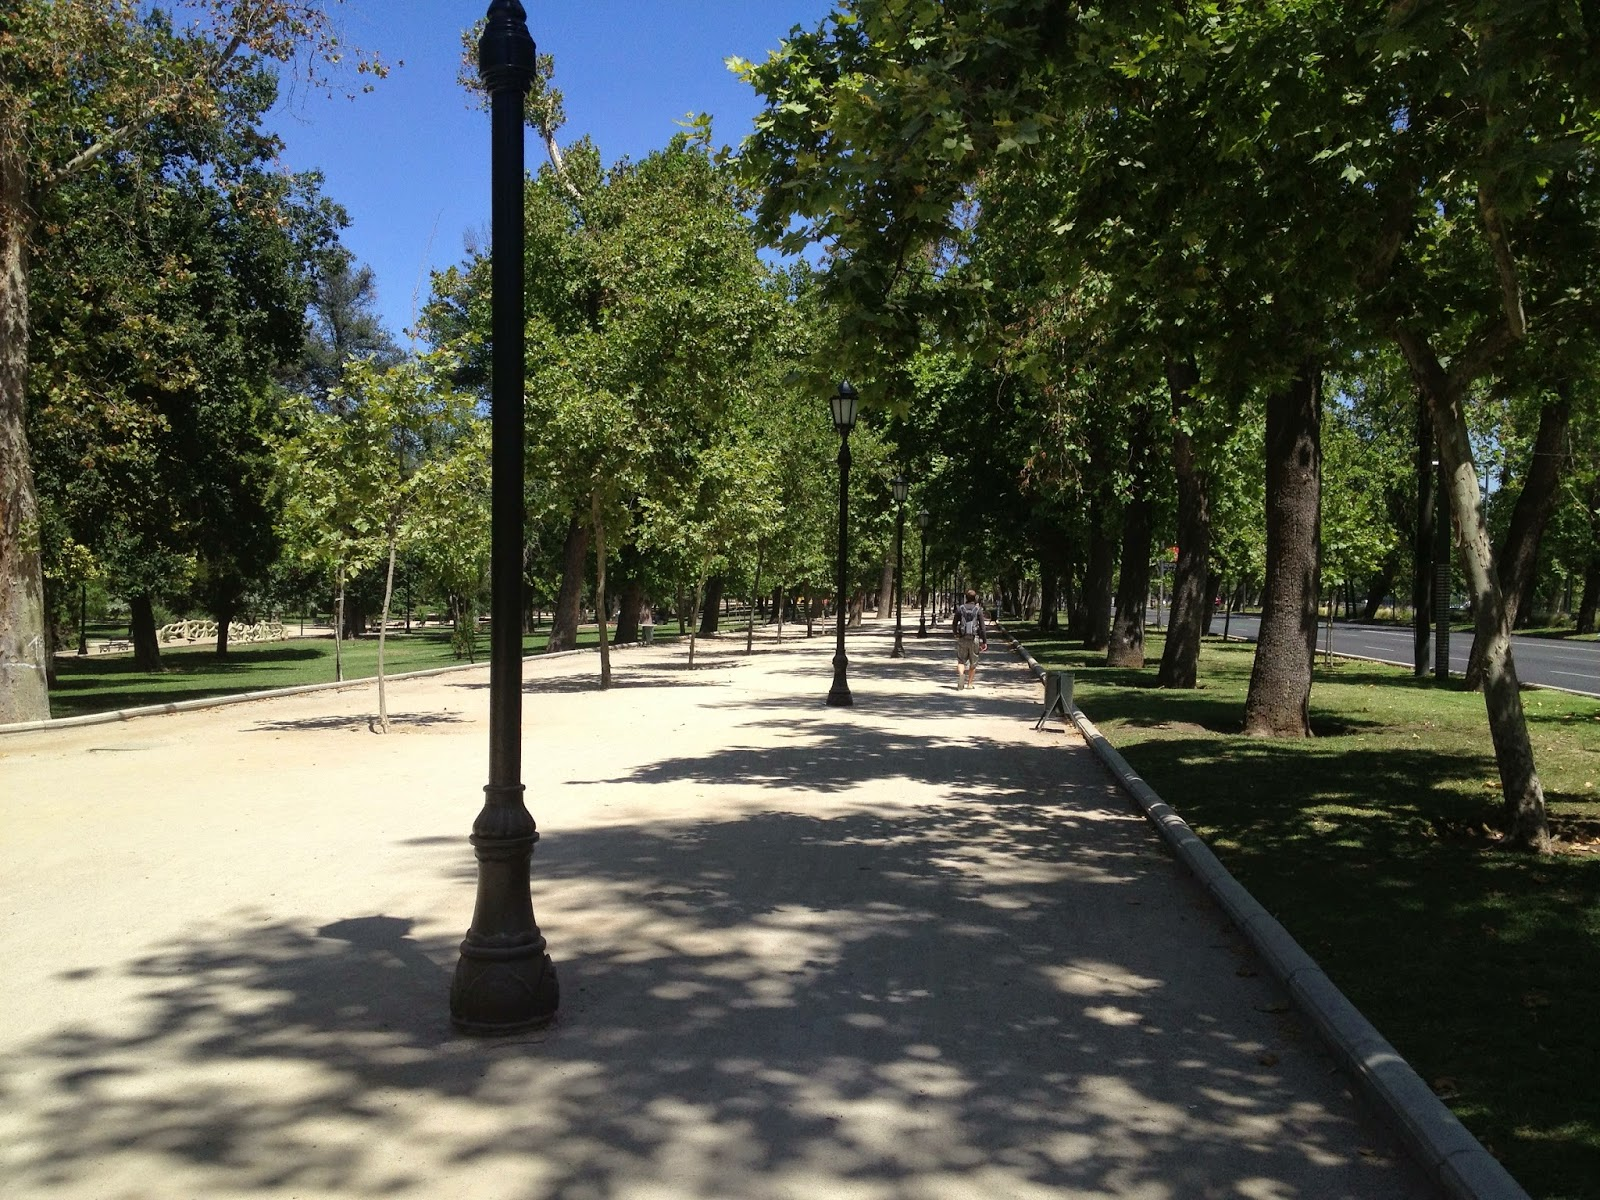 Strolling along the dusty paths of Parque Forestal